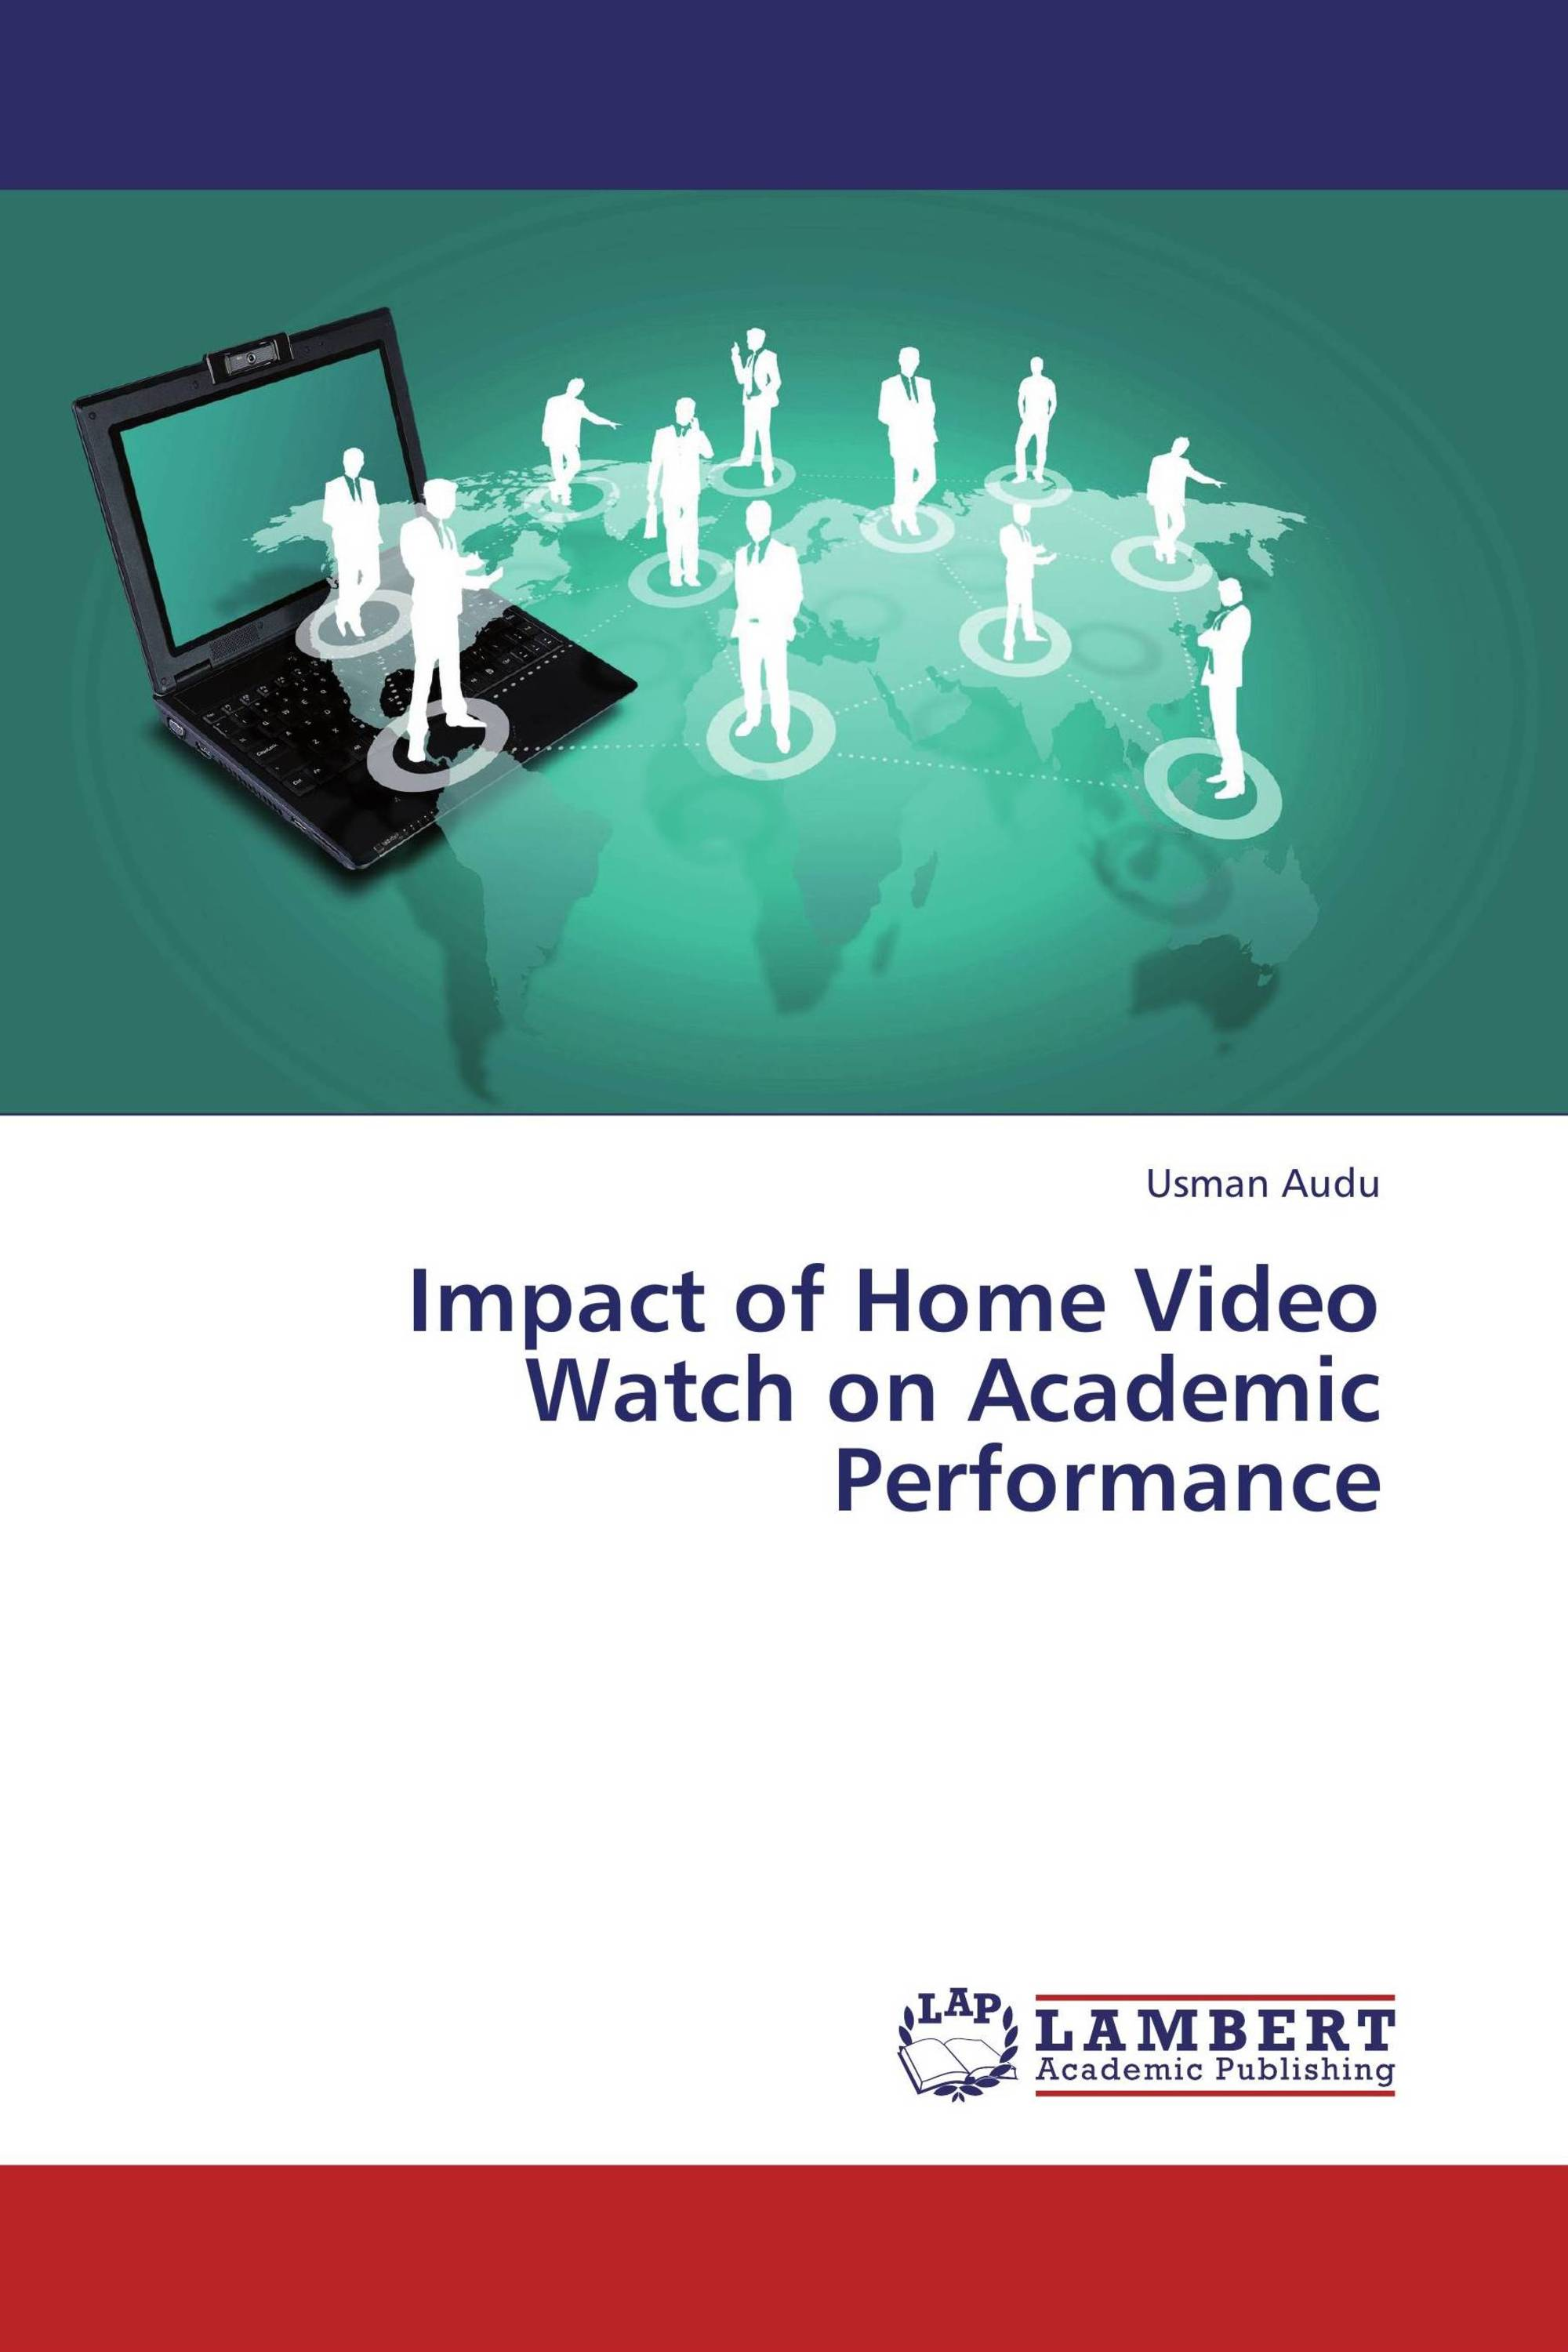 thesis on factors affecting academic performance of students Analyzed the number of factors that affect the academic performance of the student at school, college impact on student's academic performance, main source of.